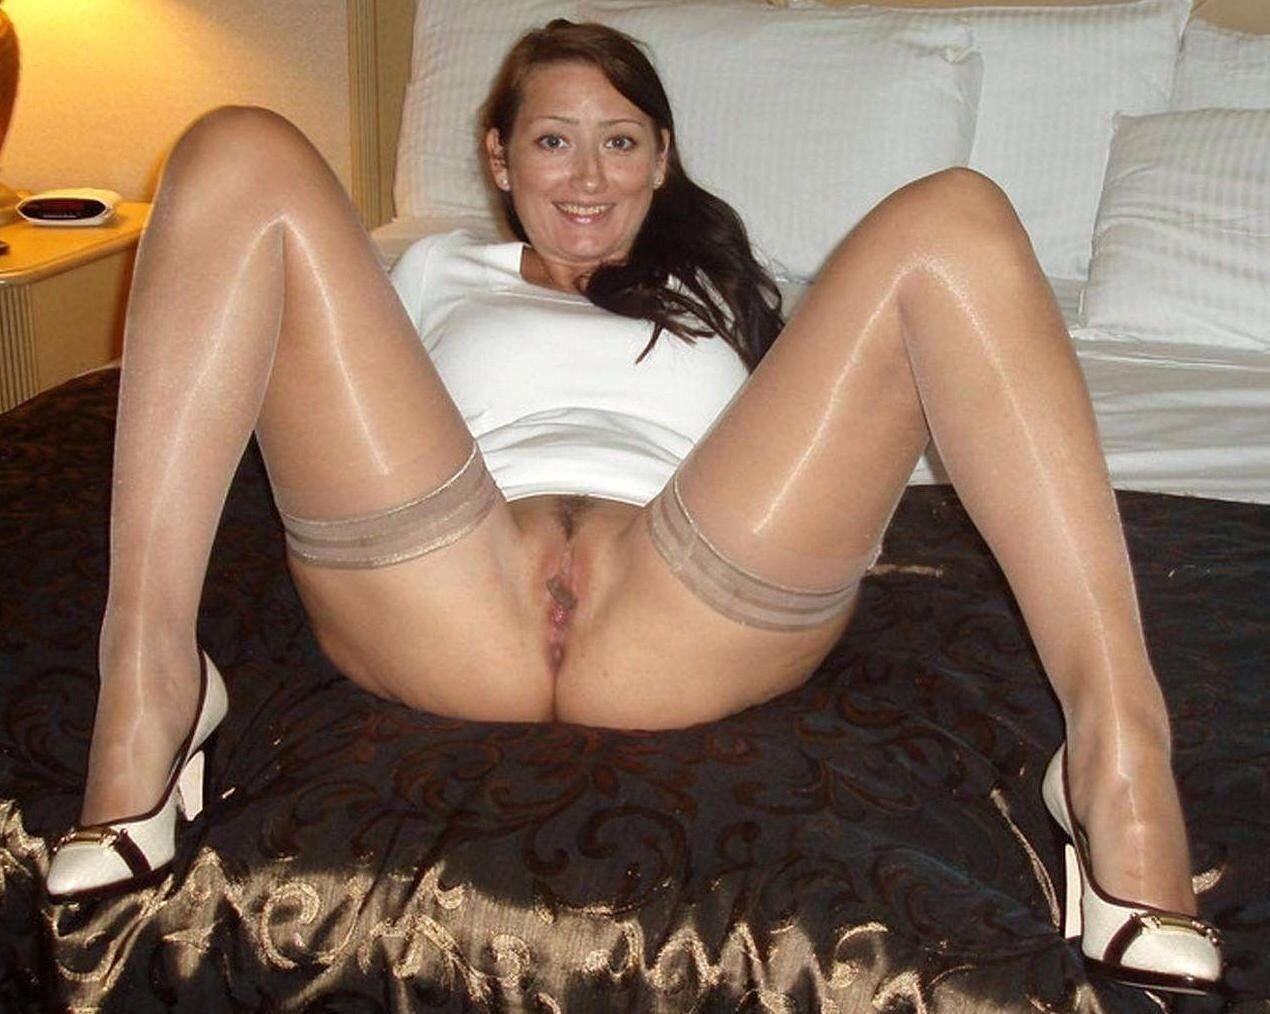 Moms nude in stockings apologise, but